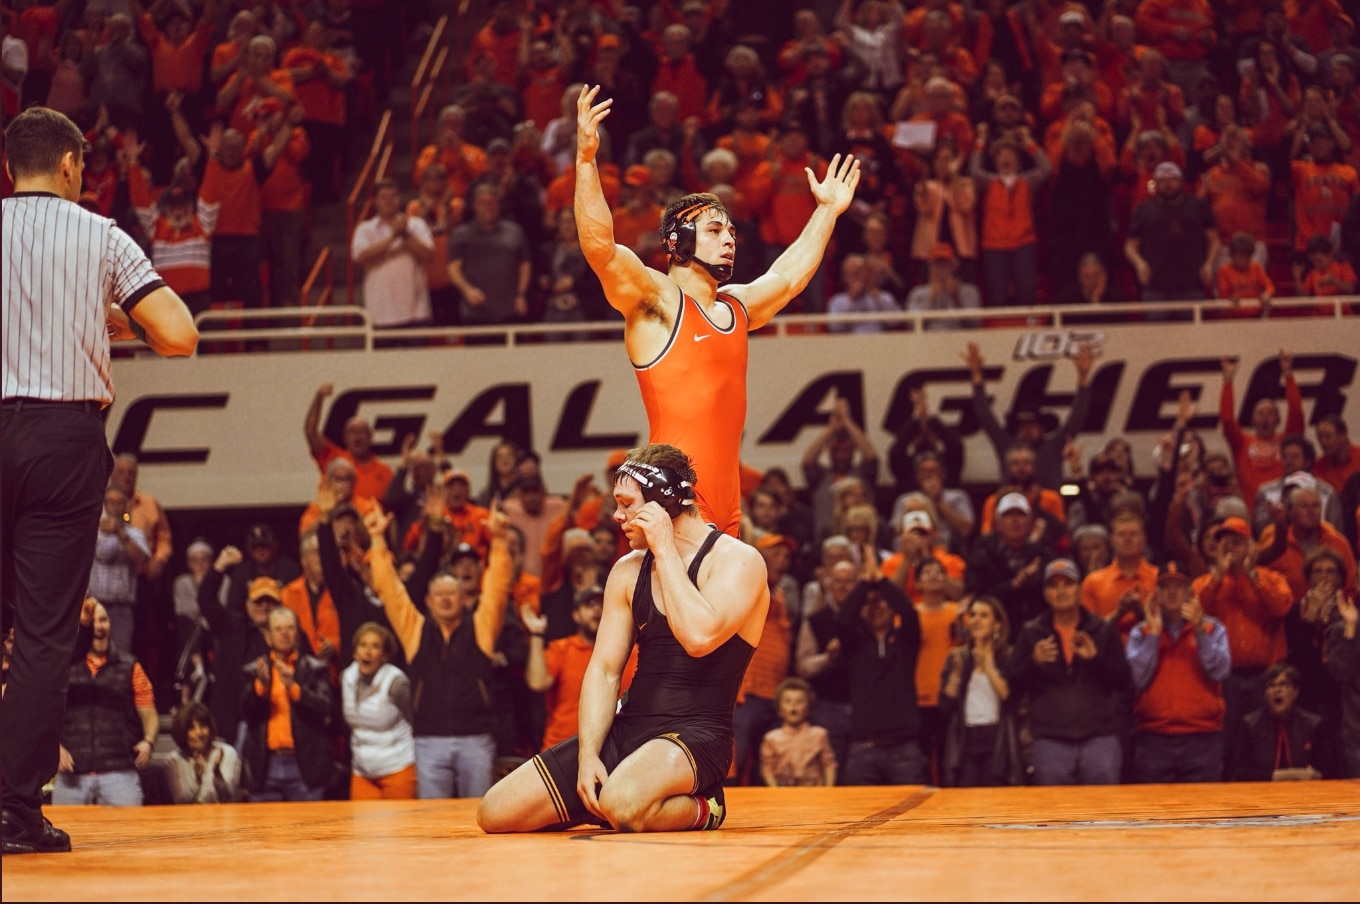 a0ef26e6d38 Oklahoma State-Iowa wrestling: Cowboys top Hawkeyes 27-12 in rivalry dual  to stay undefeated   NCAA.com